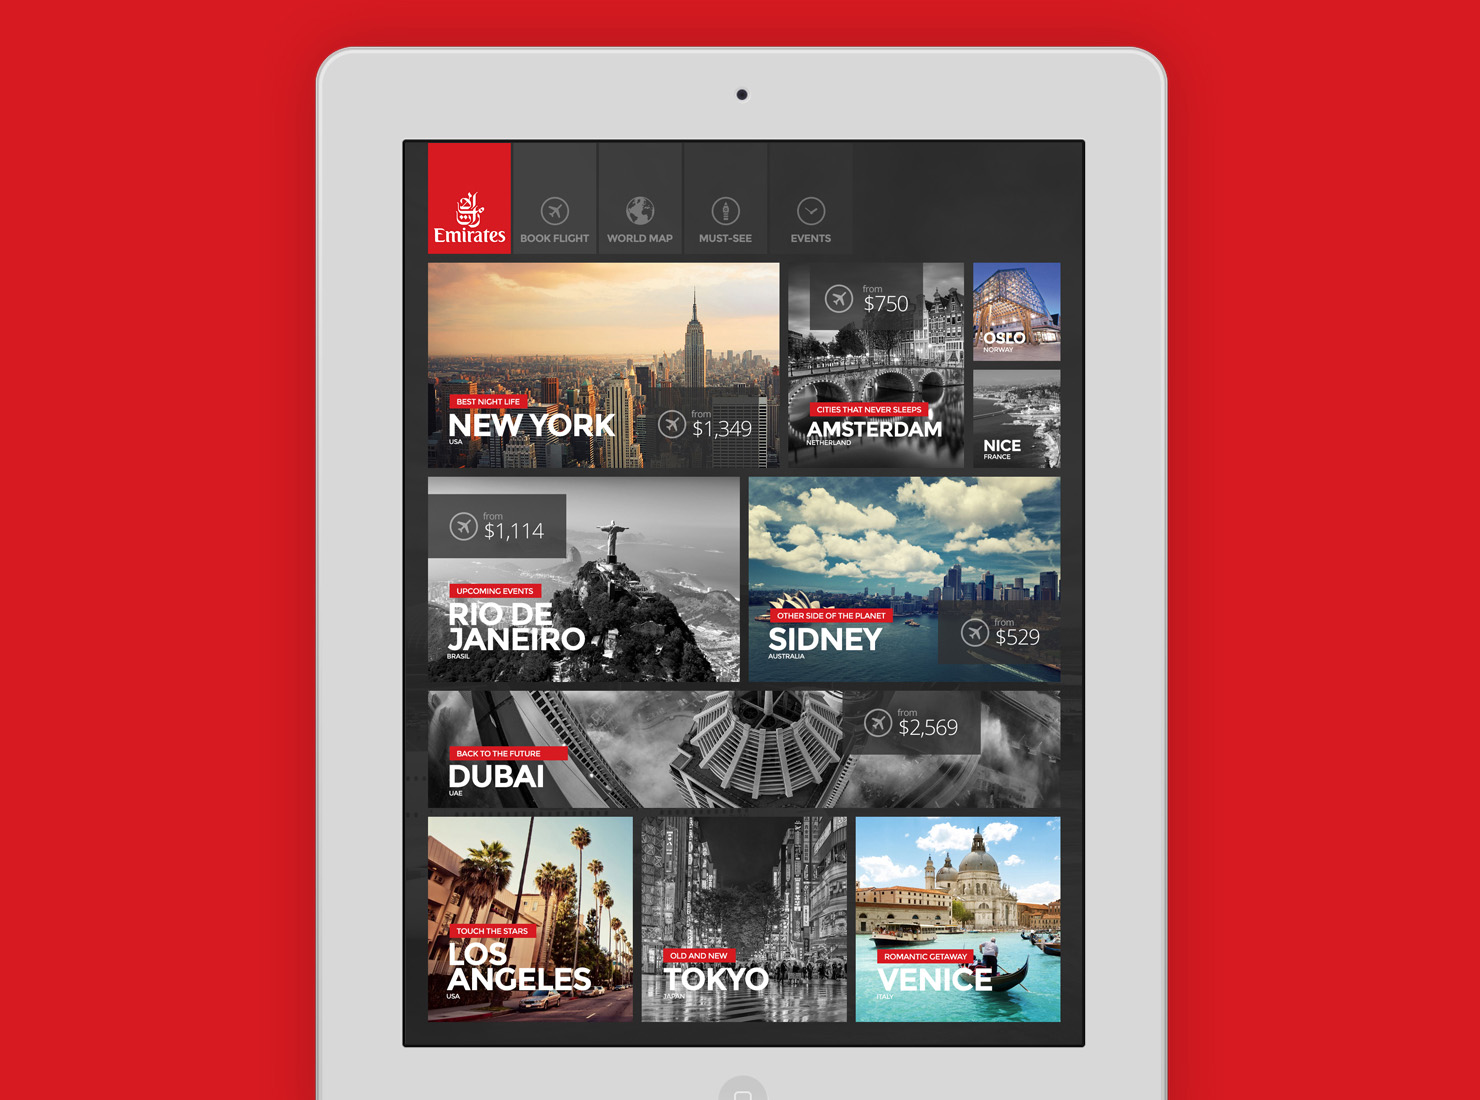 UI design for famous airline company